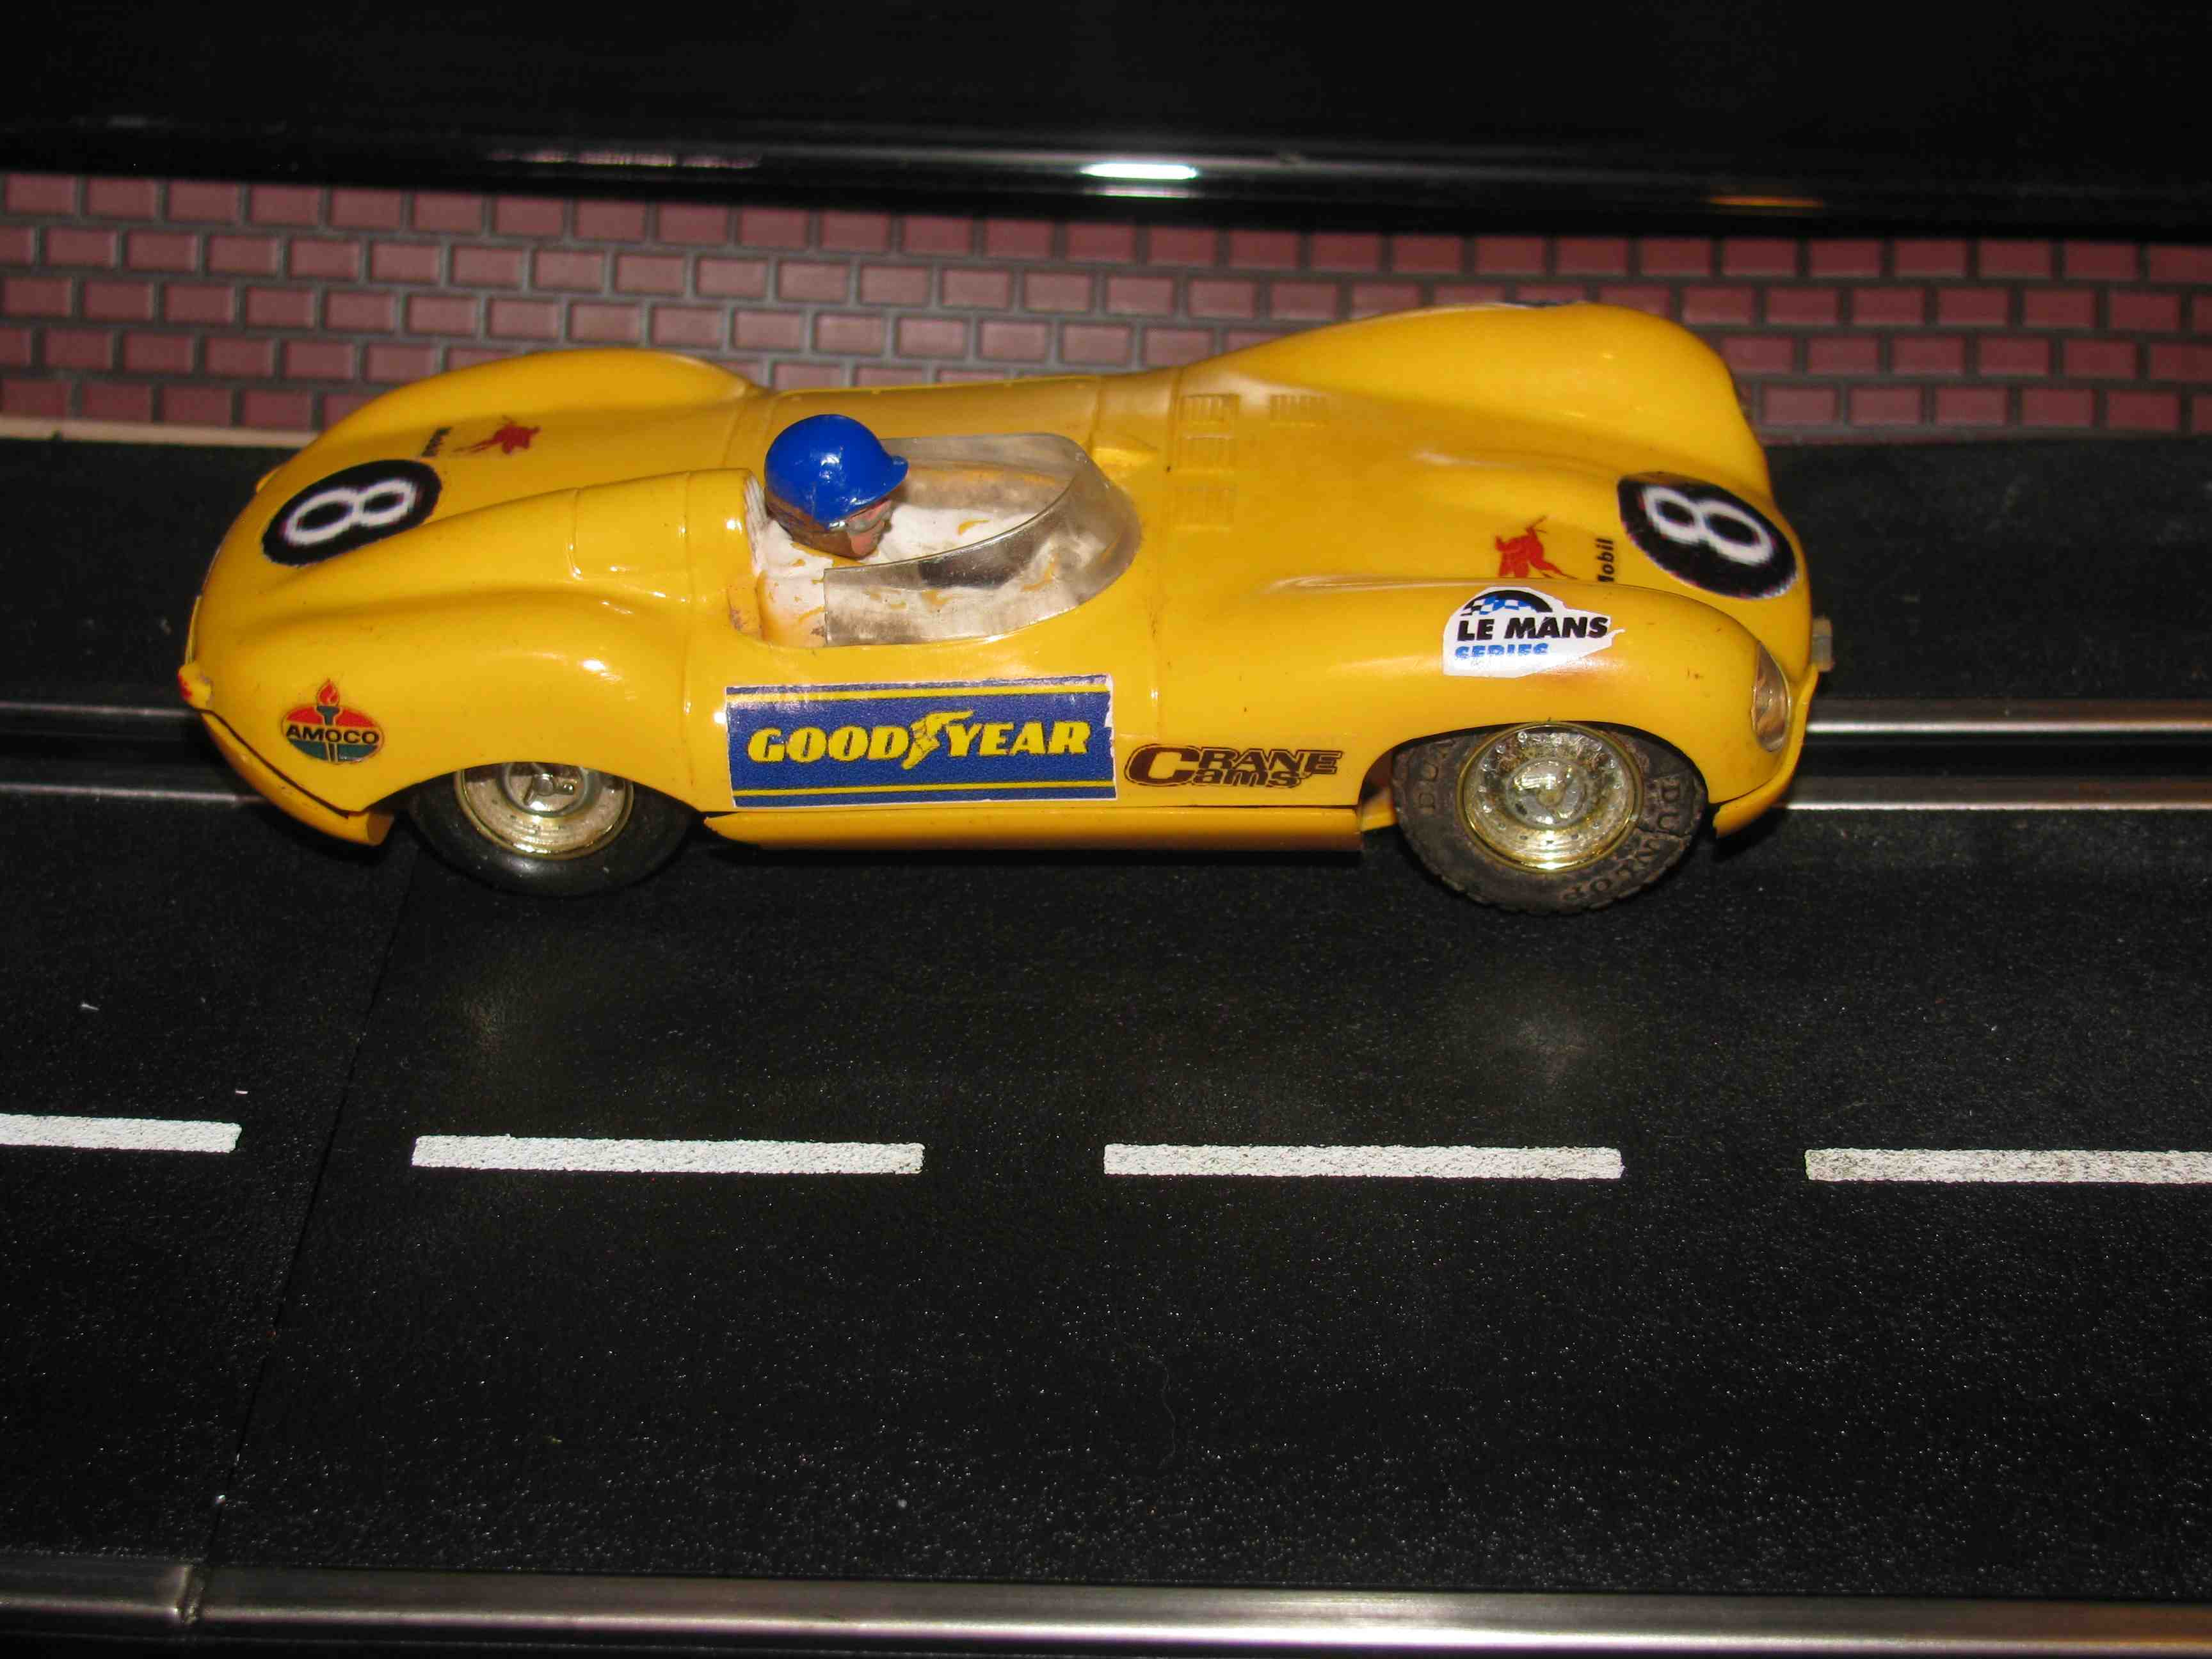 * SOLD * Very Rare and Vintage Scalextric Triang Jaguar E-Type Slot Car 1/32 Scale